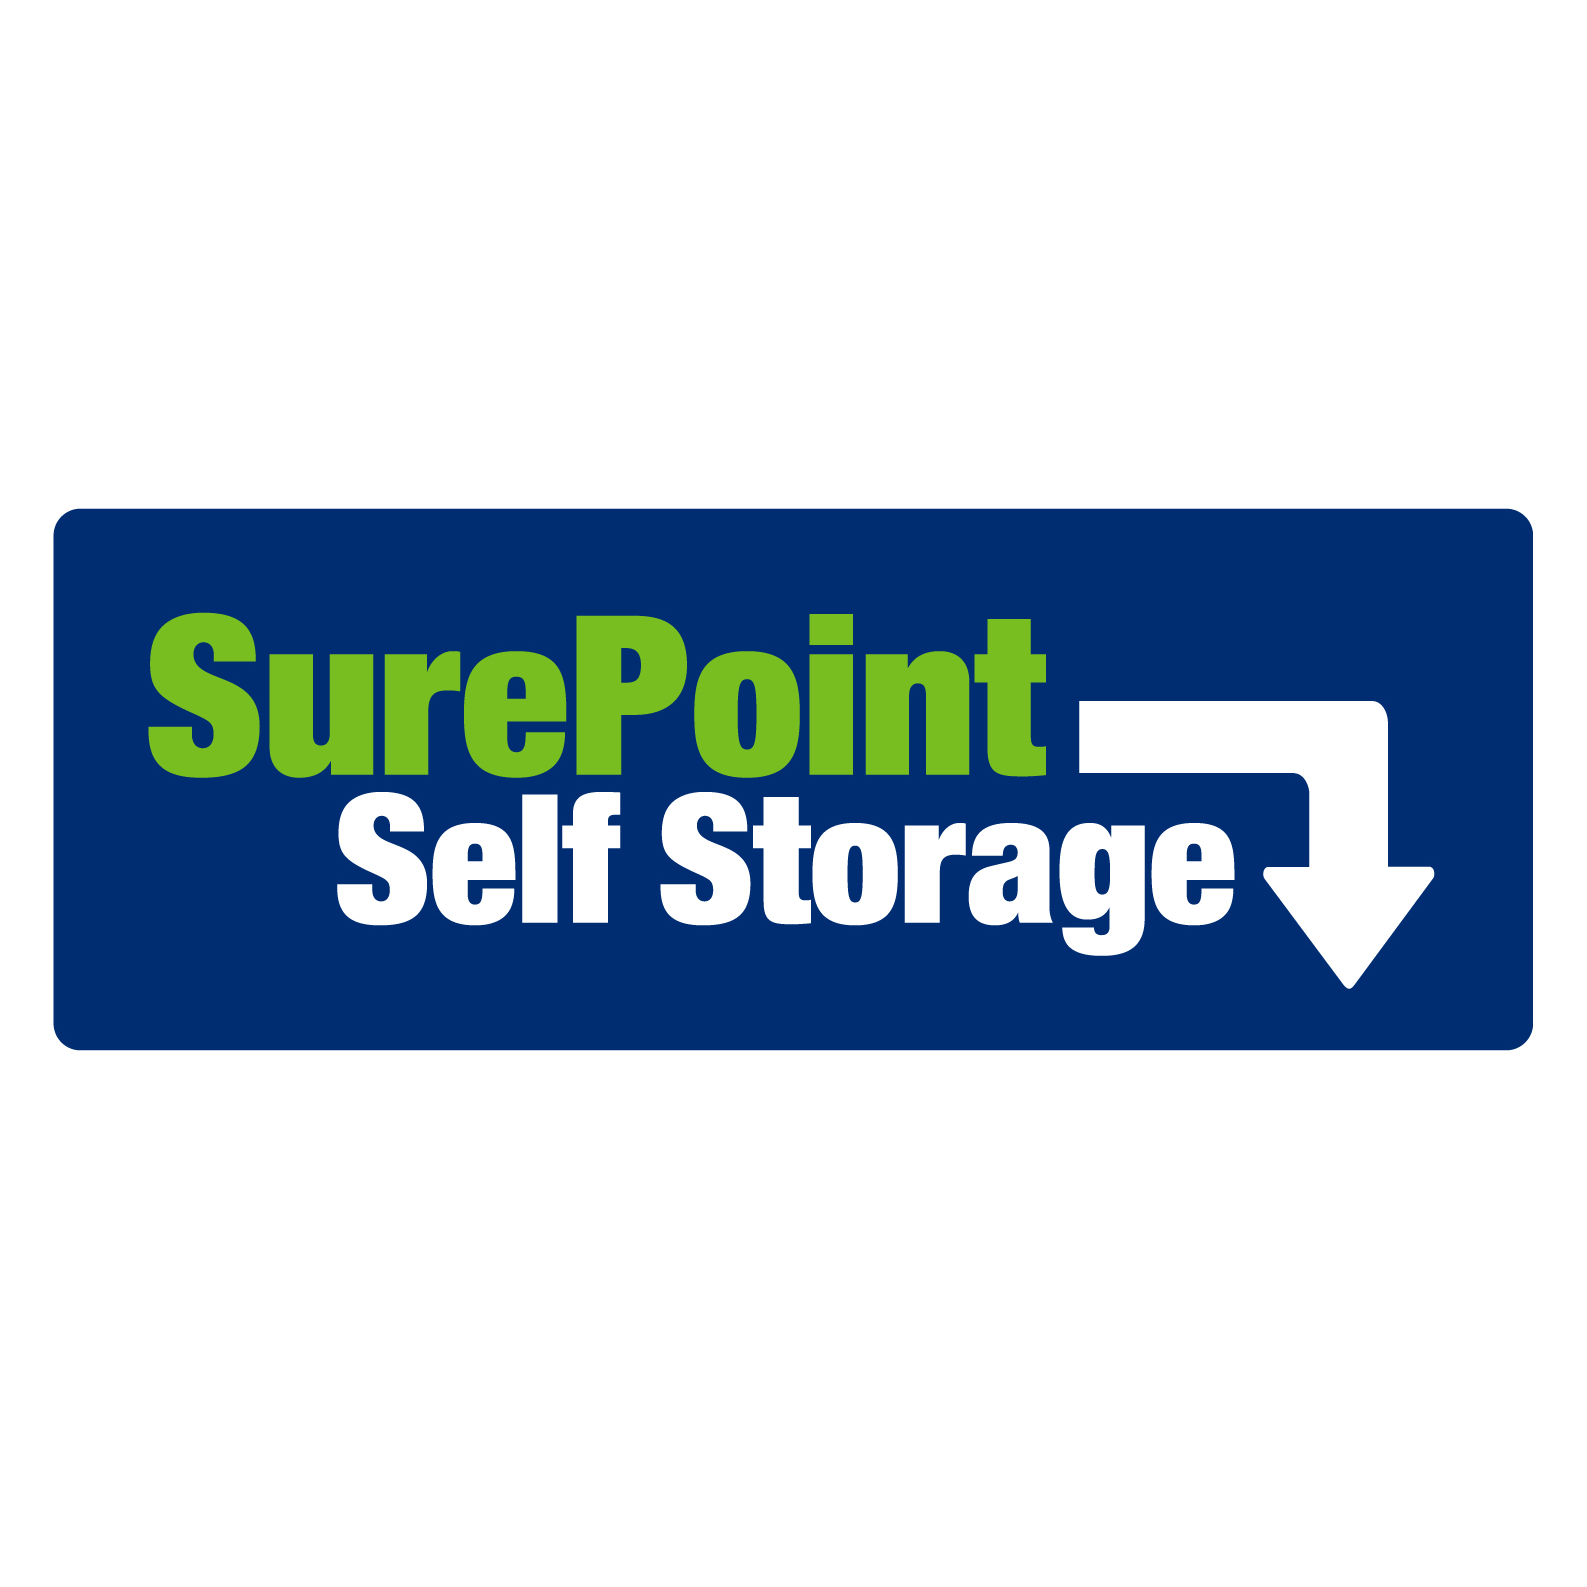 SurePoint Self Storage - FM 3009 - Schertz, TX - Self-Storage